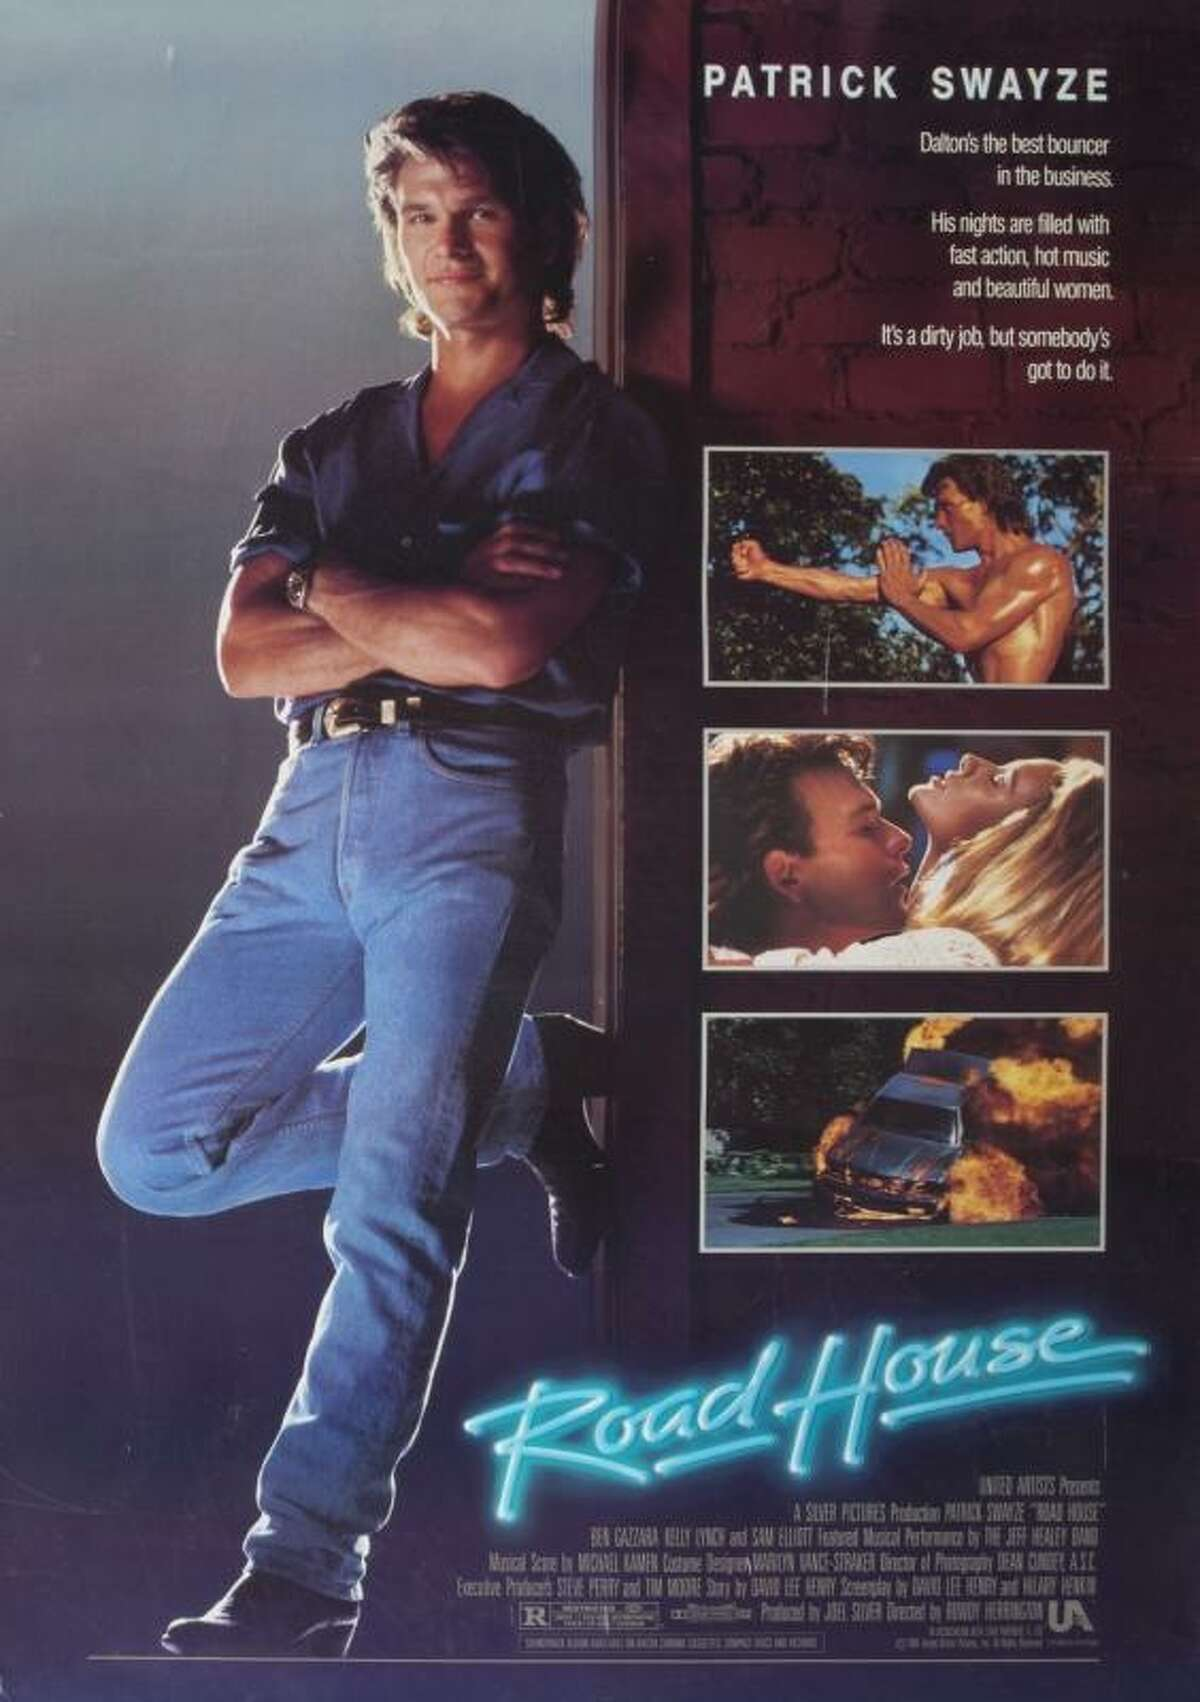 Items from the estate auction of Patrick SwayzeLot 136 includes a poster, record album, canvas tote bag, wristwatch, baseball cap and board game, allrelating to the film